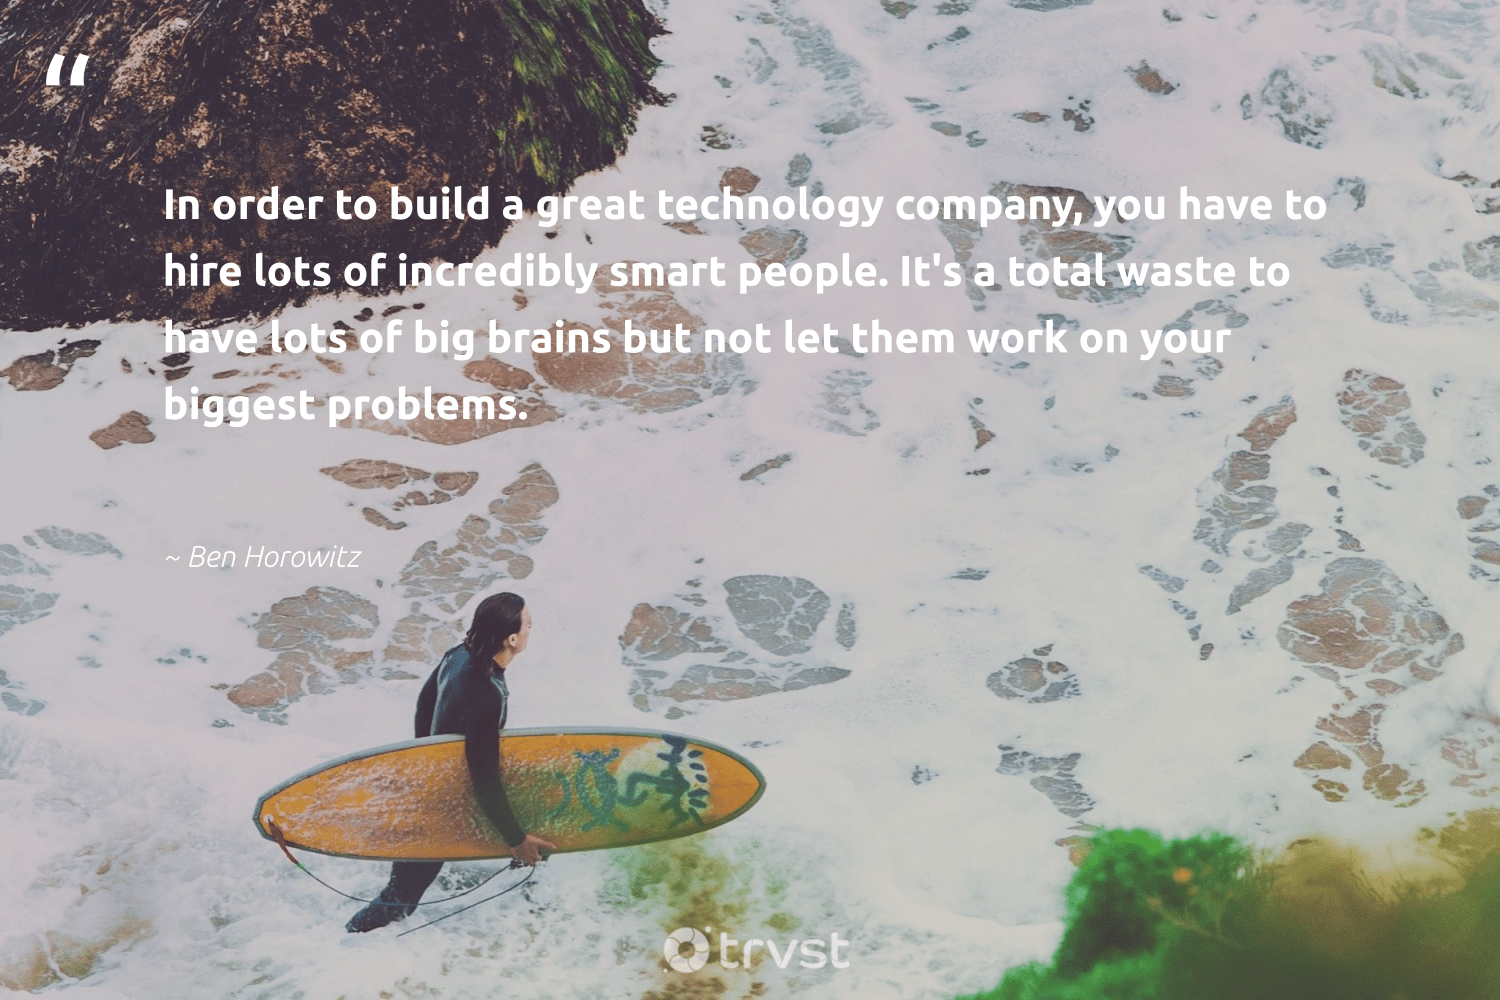 """""""In order to build a great technology company, you have to hire lots of incredibly smart people. It's a total waste to have lots of big brains but not let them work on your biggest problems.""""  - Ben Horowitz #trvst #quotes #waste #makeadifference #takeaction #socialchange #dogood #giveback #impact #ethicalbusiness #beinspired #betterplanet"""